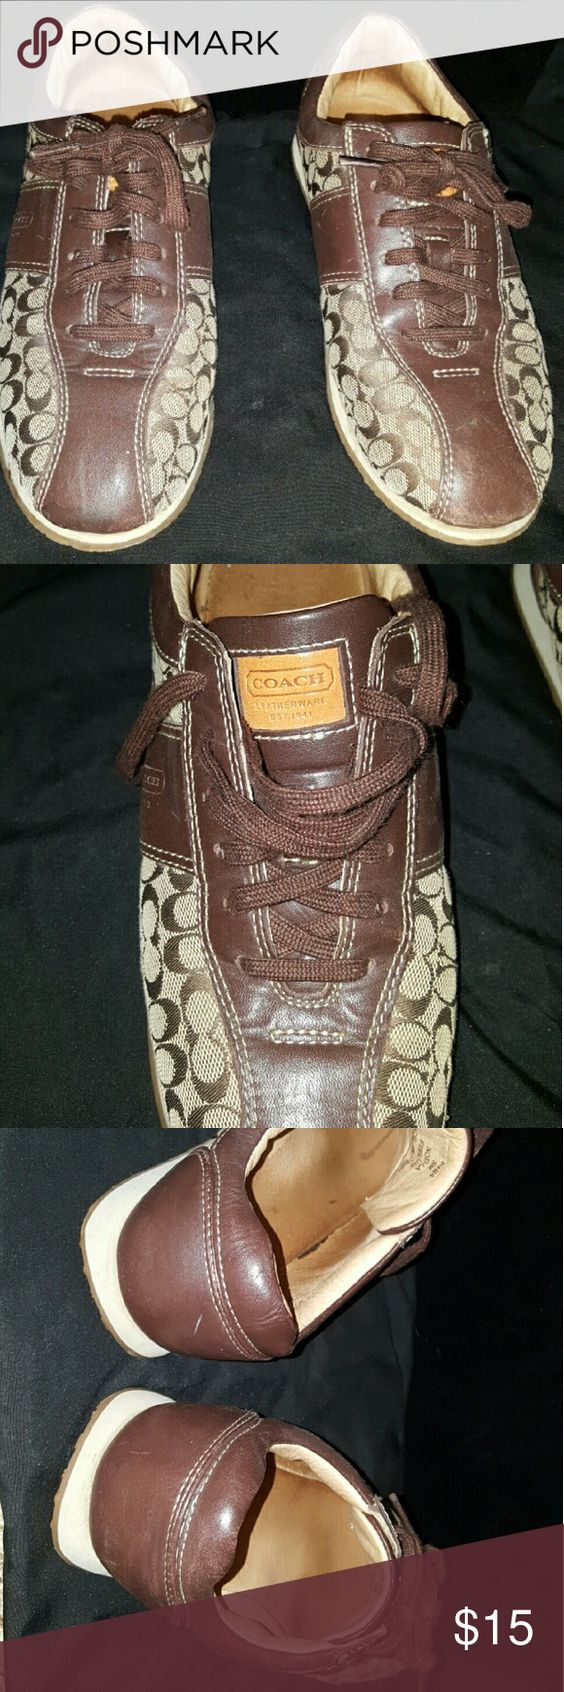 Shoes Used-authentic Coach signature collection sneaker Coach Shoes Sneakers